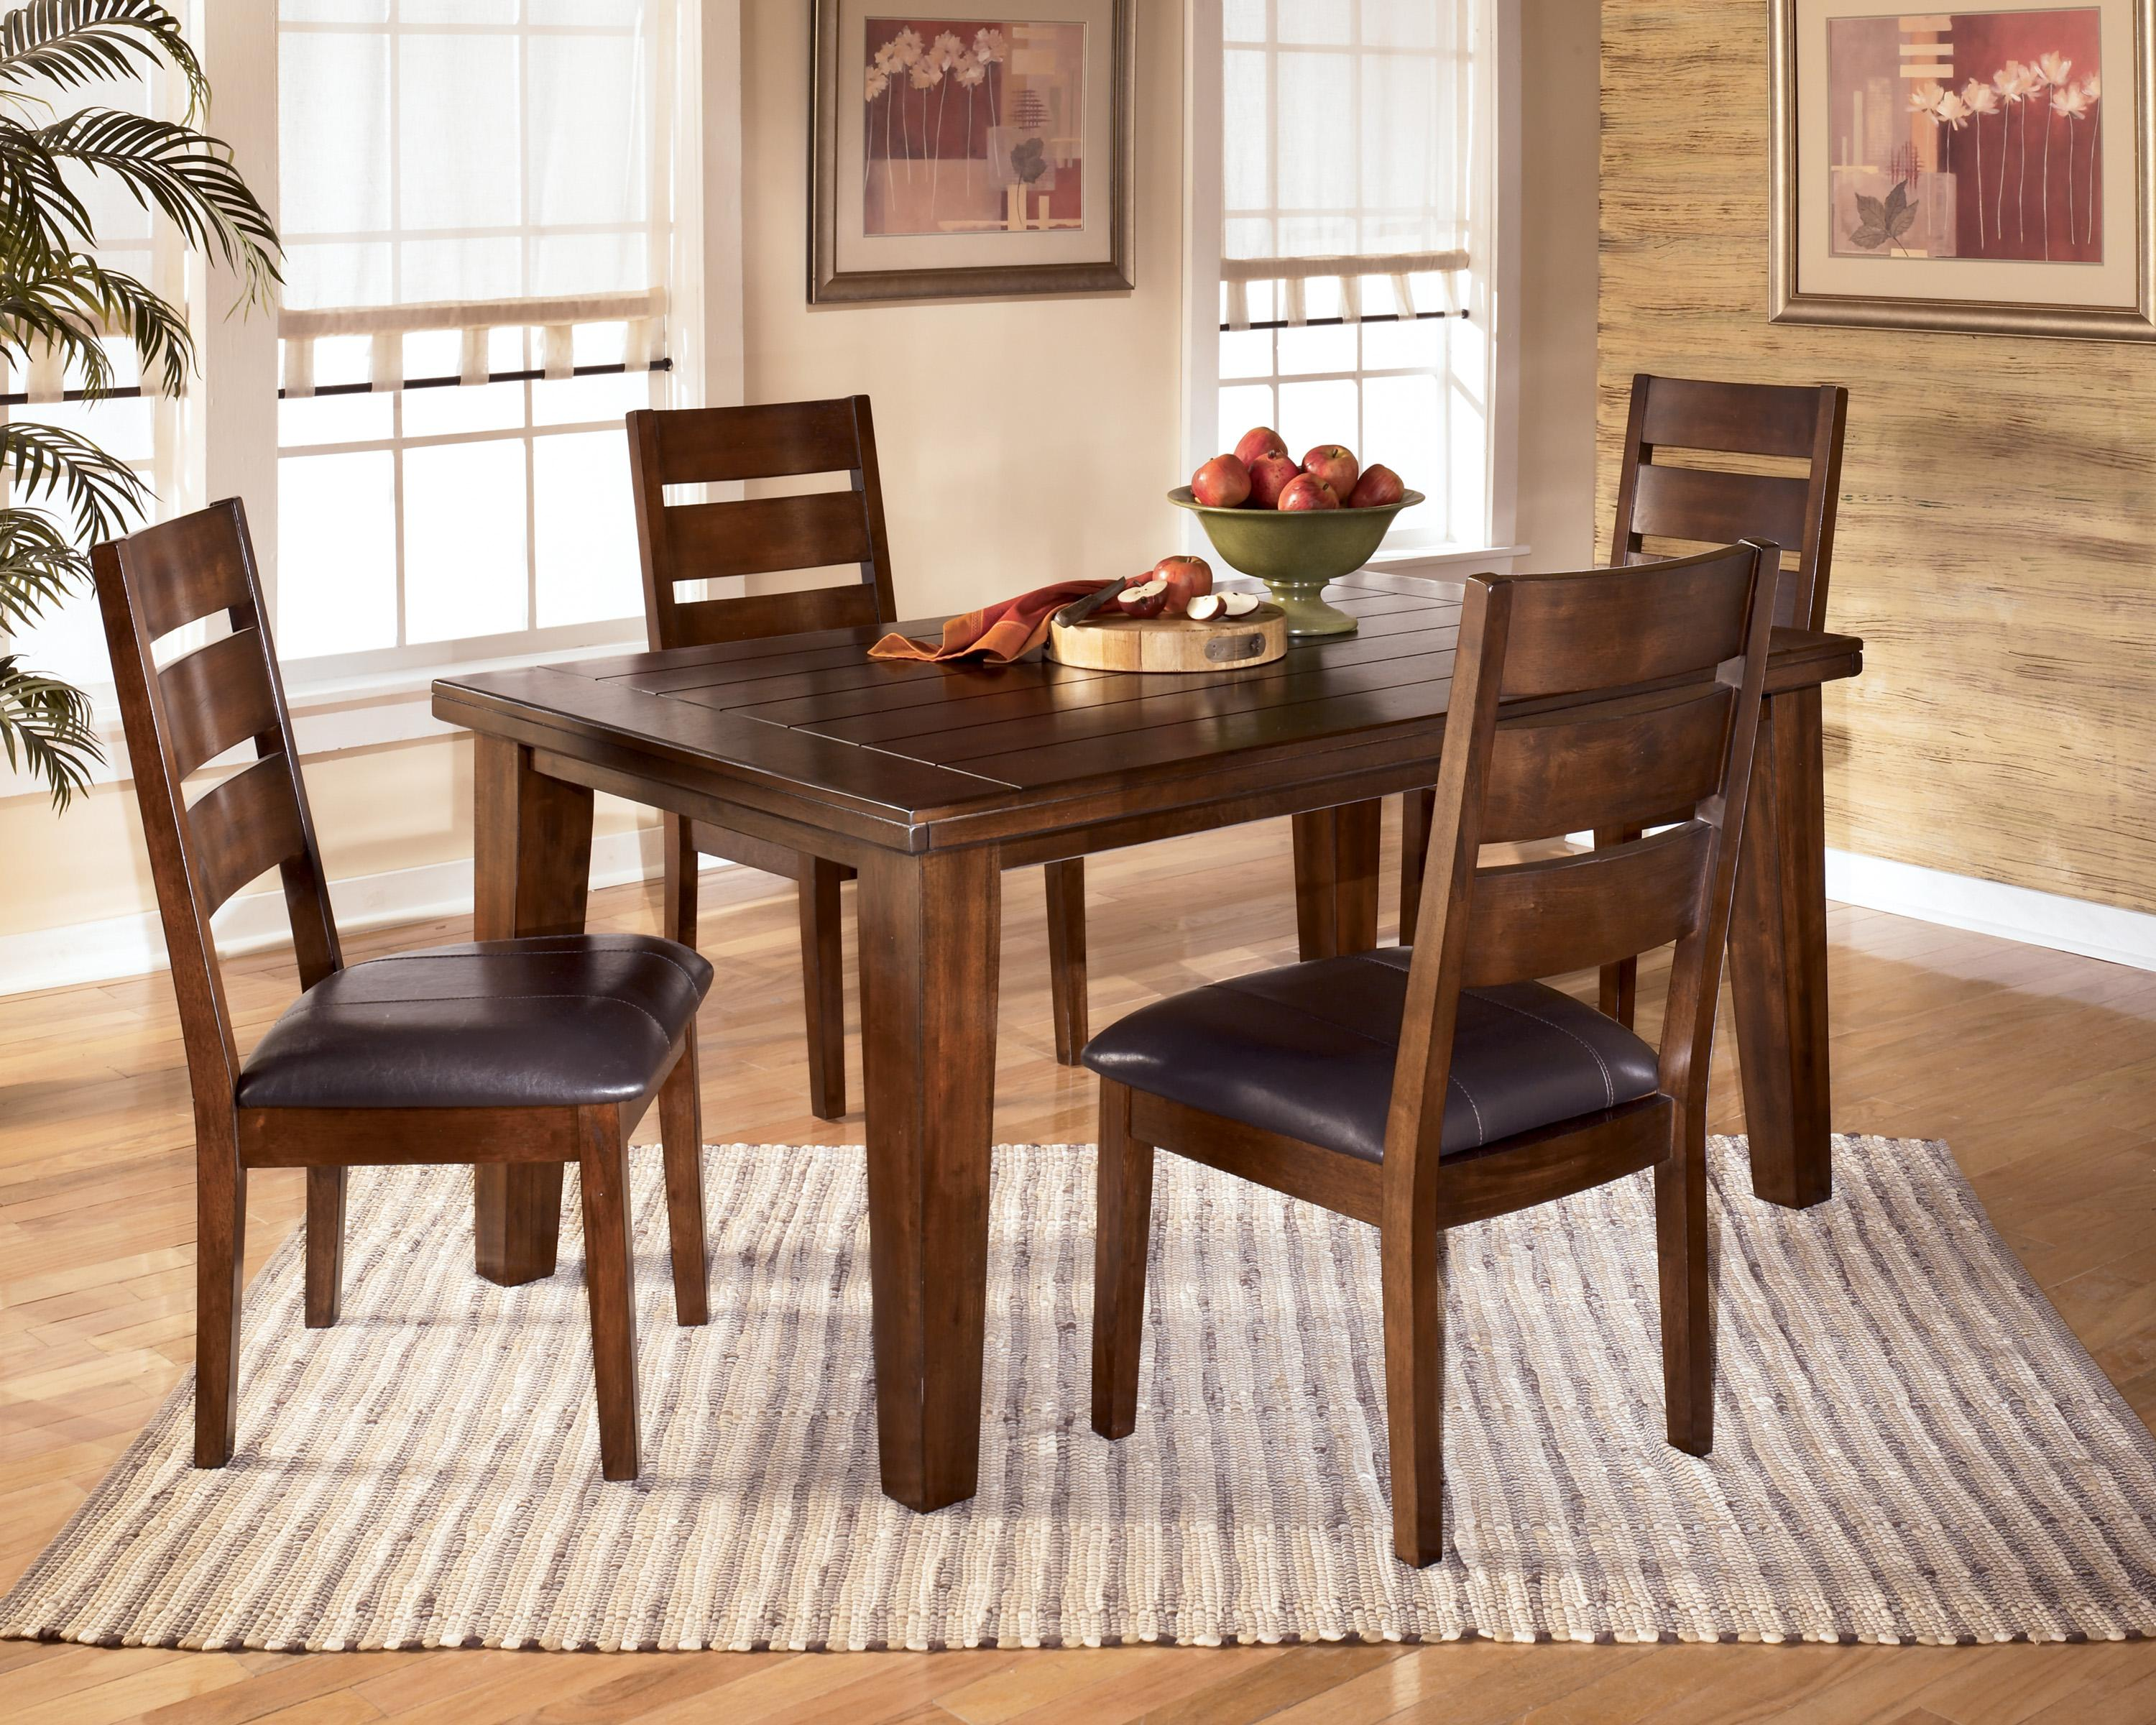 Ashley Furniture Kitchen Tables Signature Design By Ashley Furniture  Larchmont Rectangular Extension Table 5 Chairs And